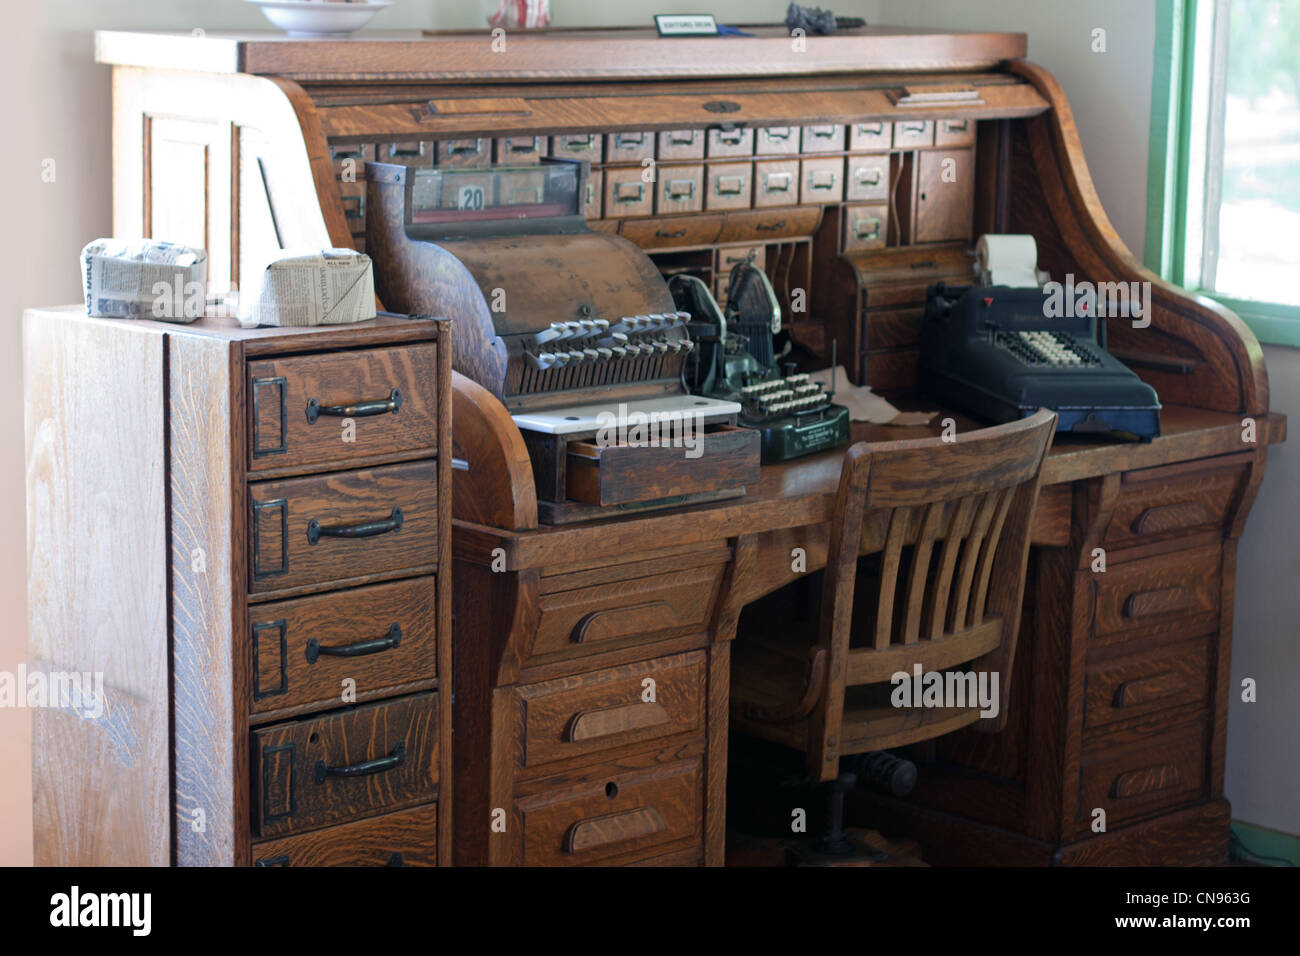 antique roll top desk with typewriter - Antique Roll Top Desk With Typewriter Stock Photo: 47530884 - Alamy